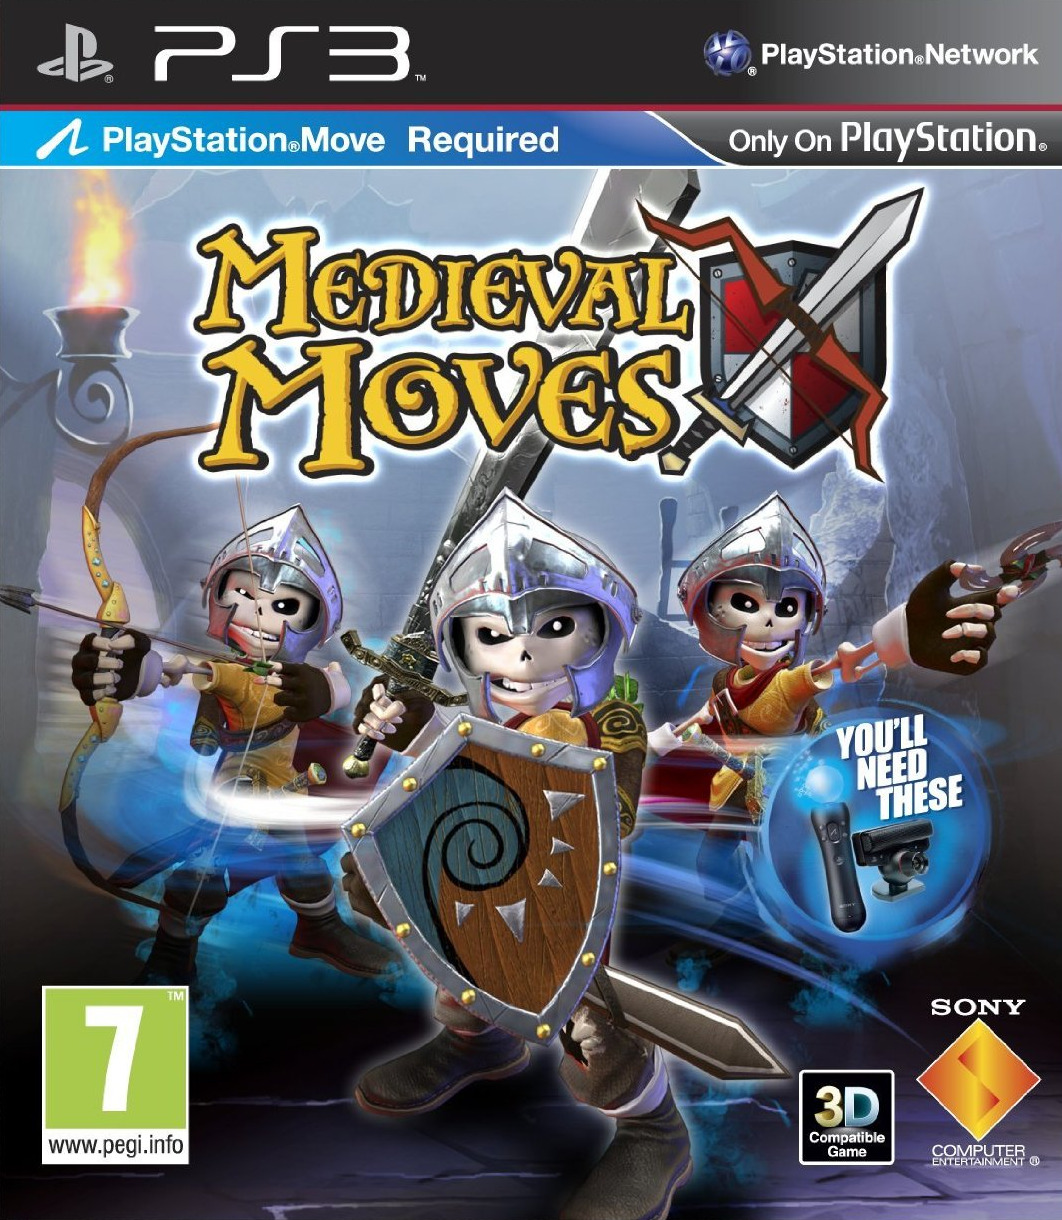 [MULTI] Medieval Moves PS3 [3.72]